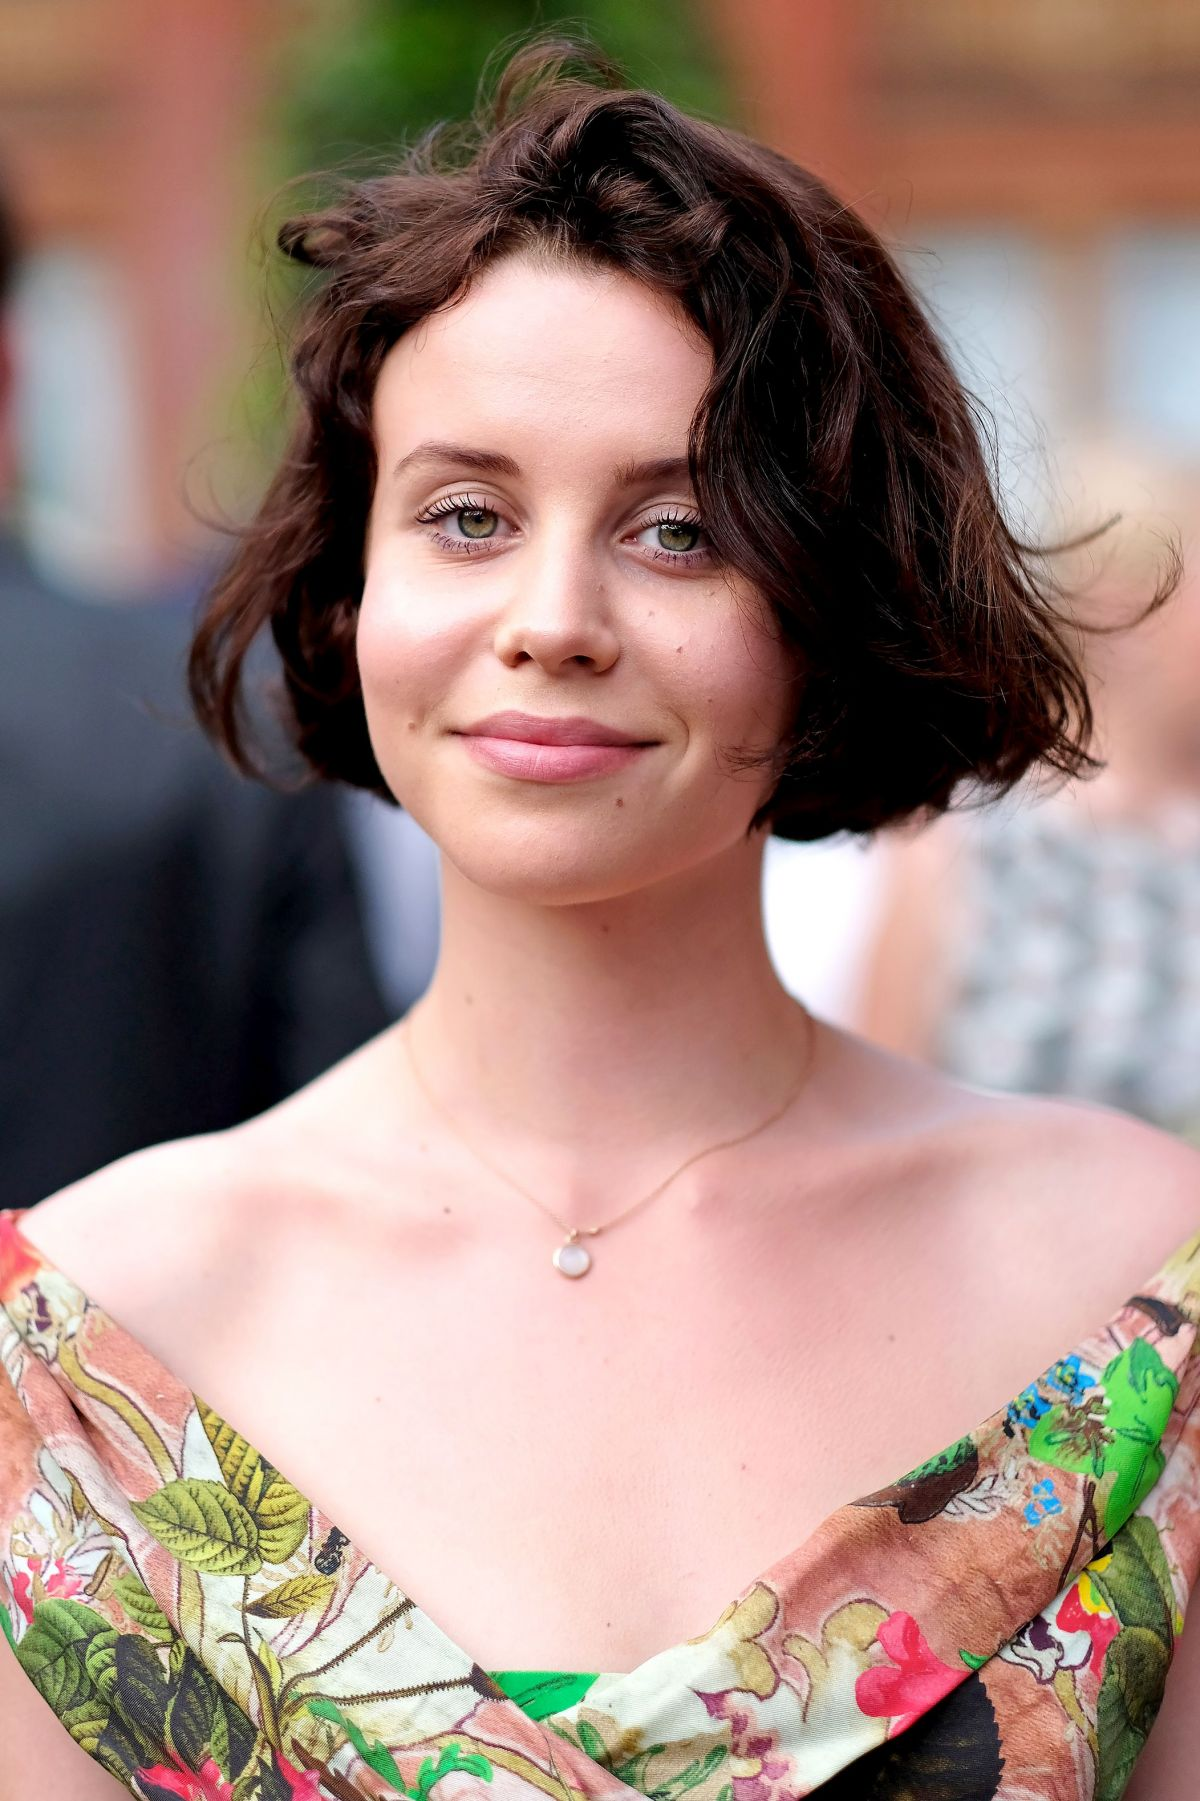 Le Meilleur Billie Jd Porter At V A Summer Party In London 06 21 2017 Ce Mois Ci